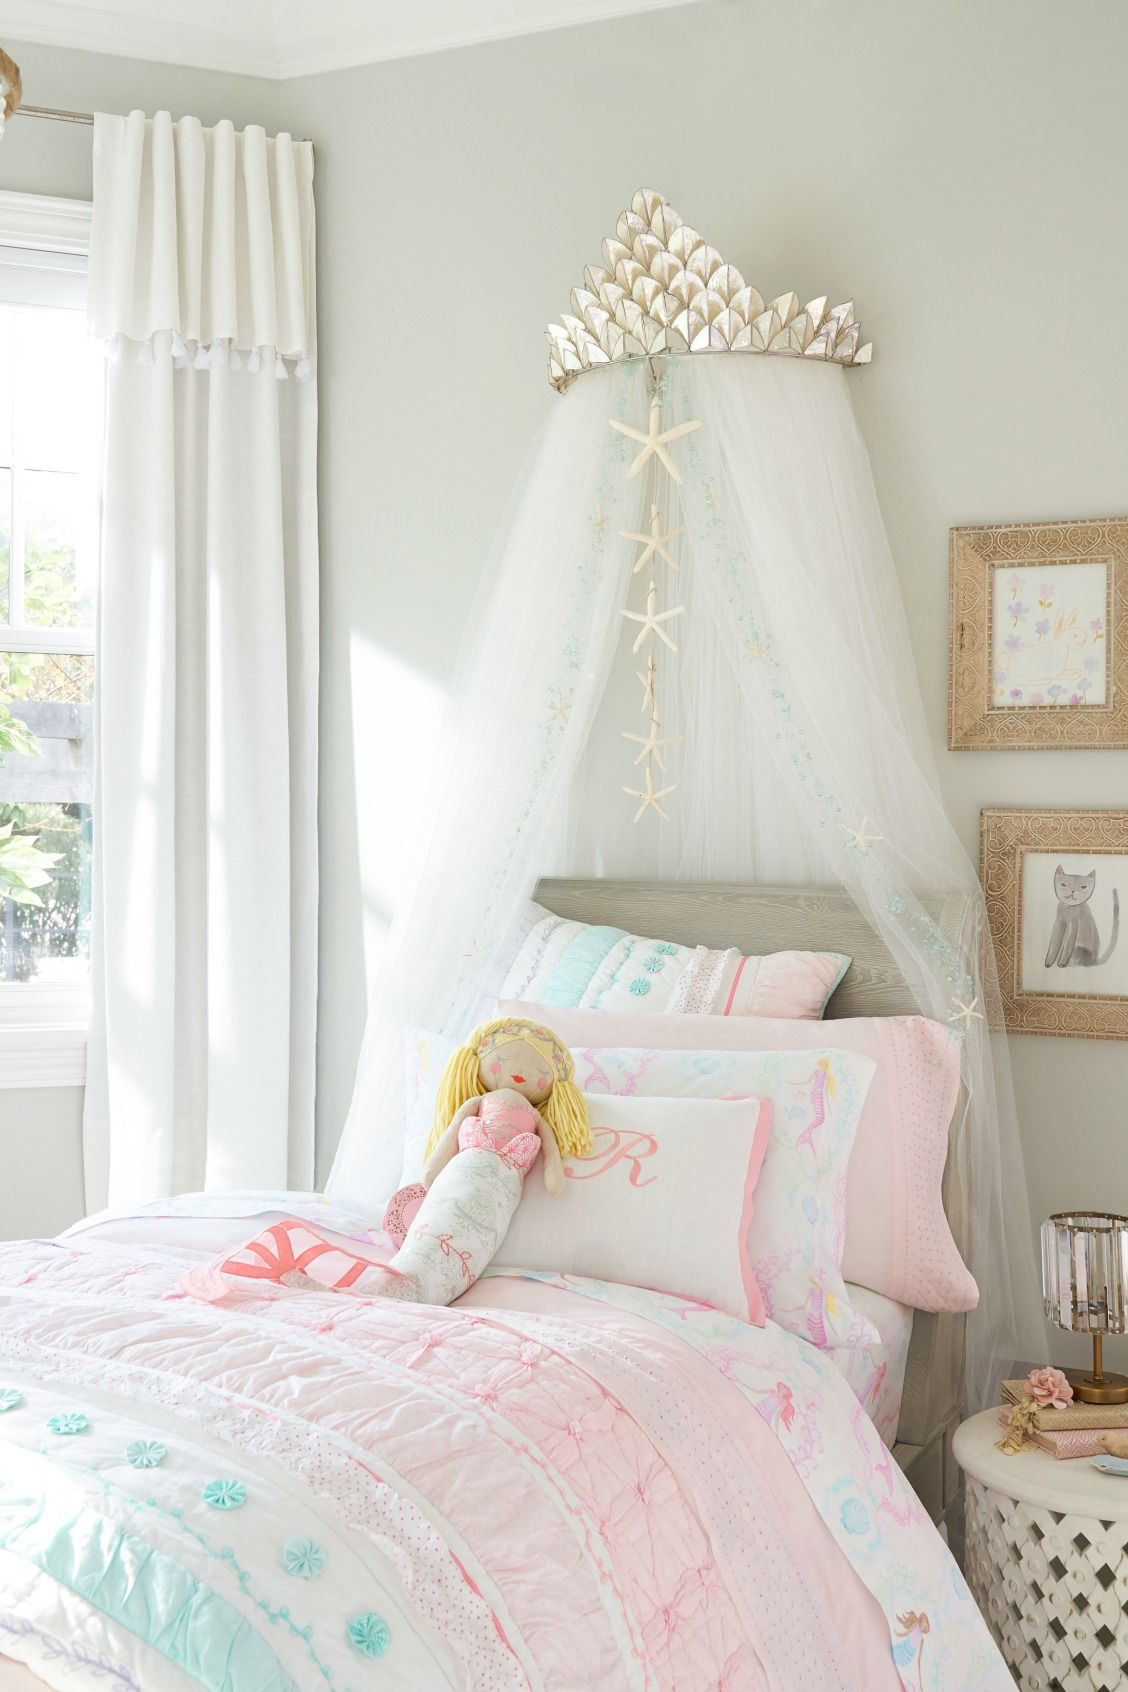 Add seaside accents to your Girls Room with our Capiz Cornice